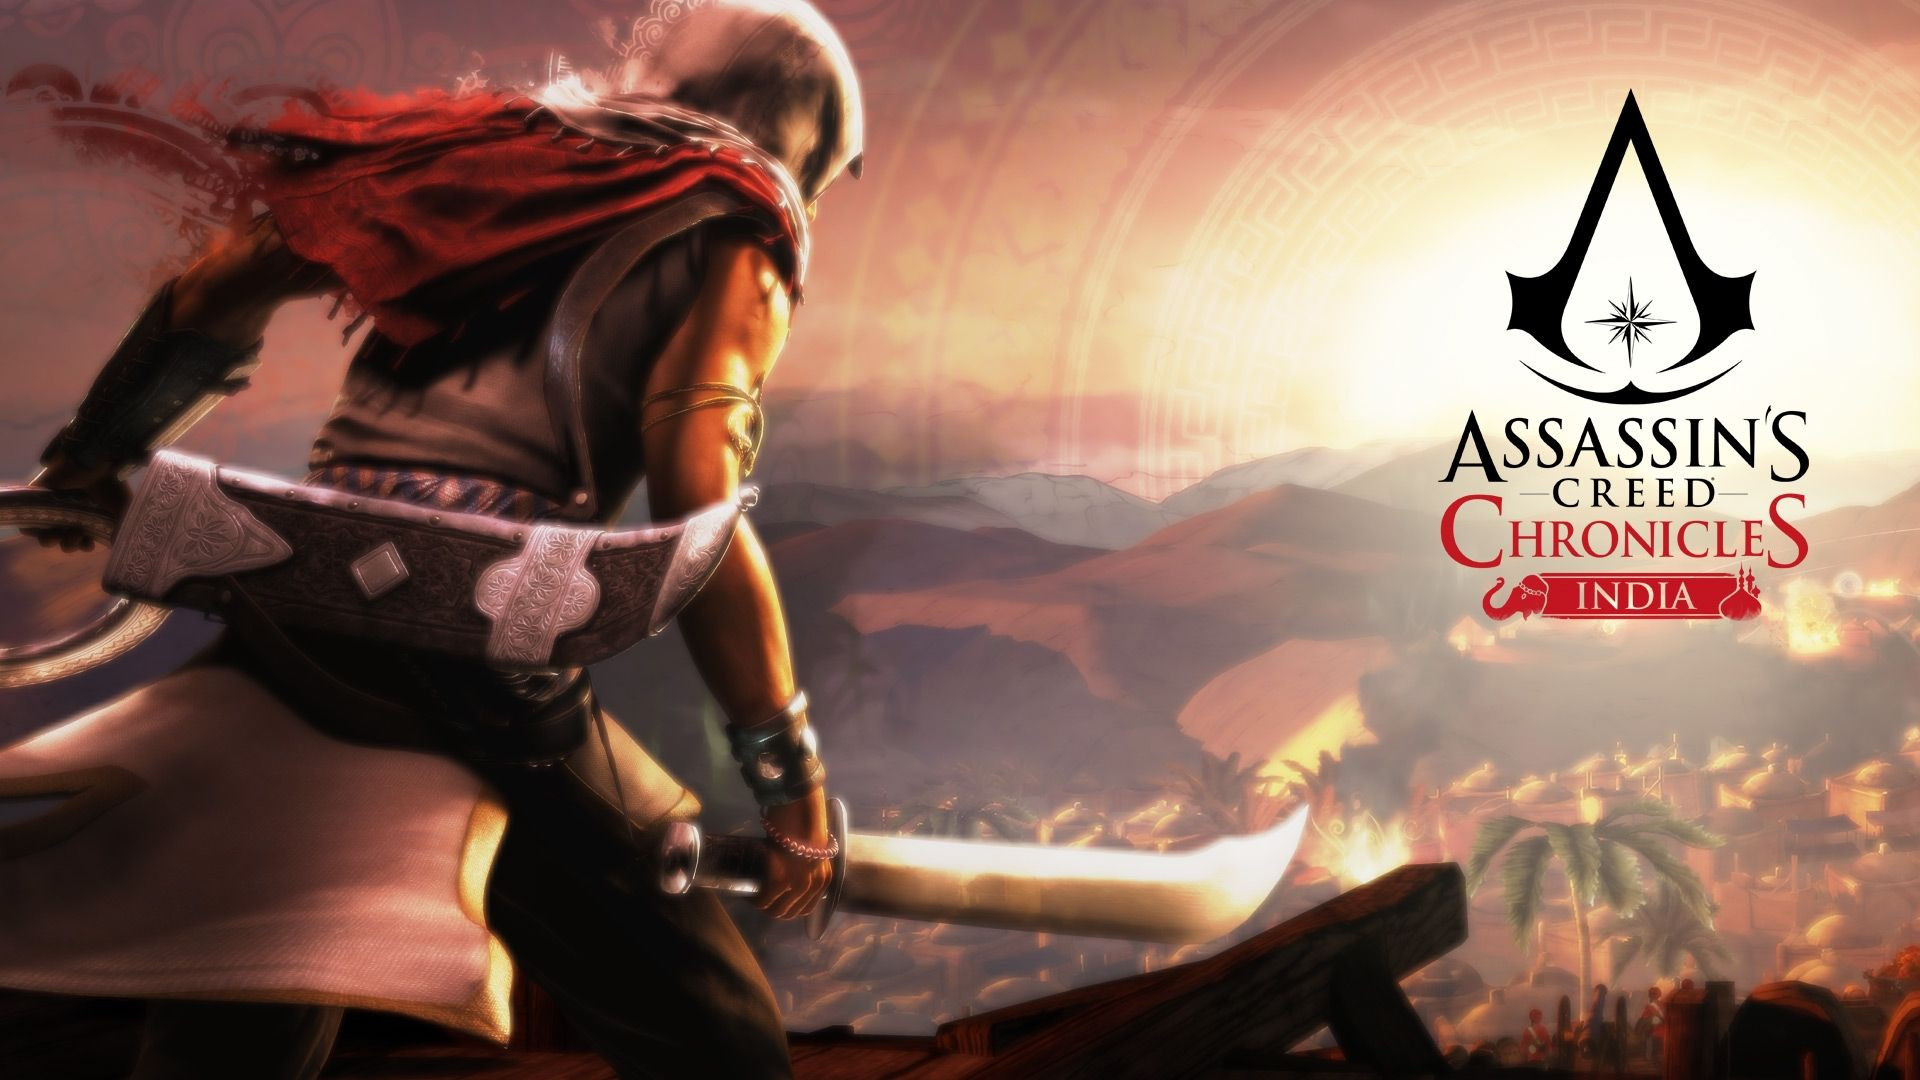 Assassin S Creed India Wallpaper Assassin S Creed Chronicles